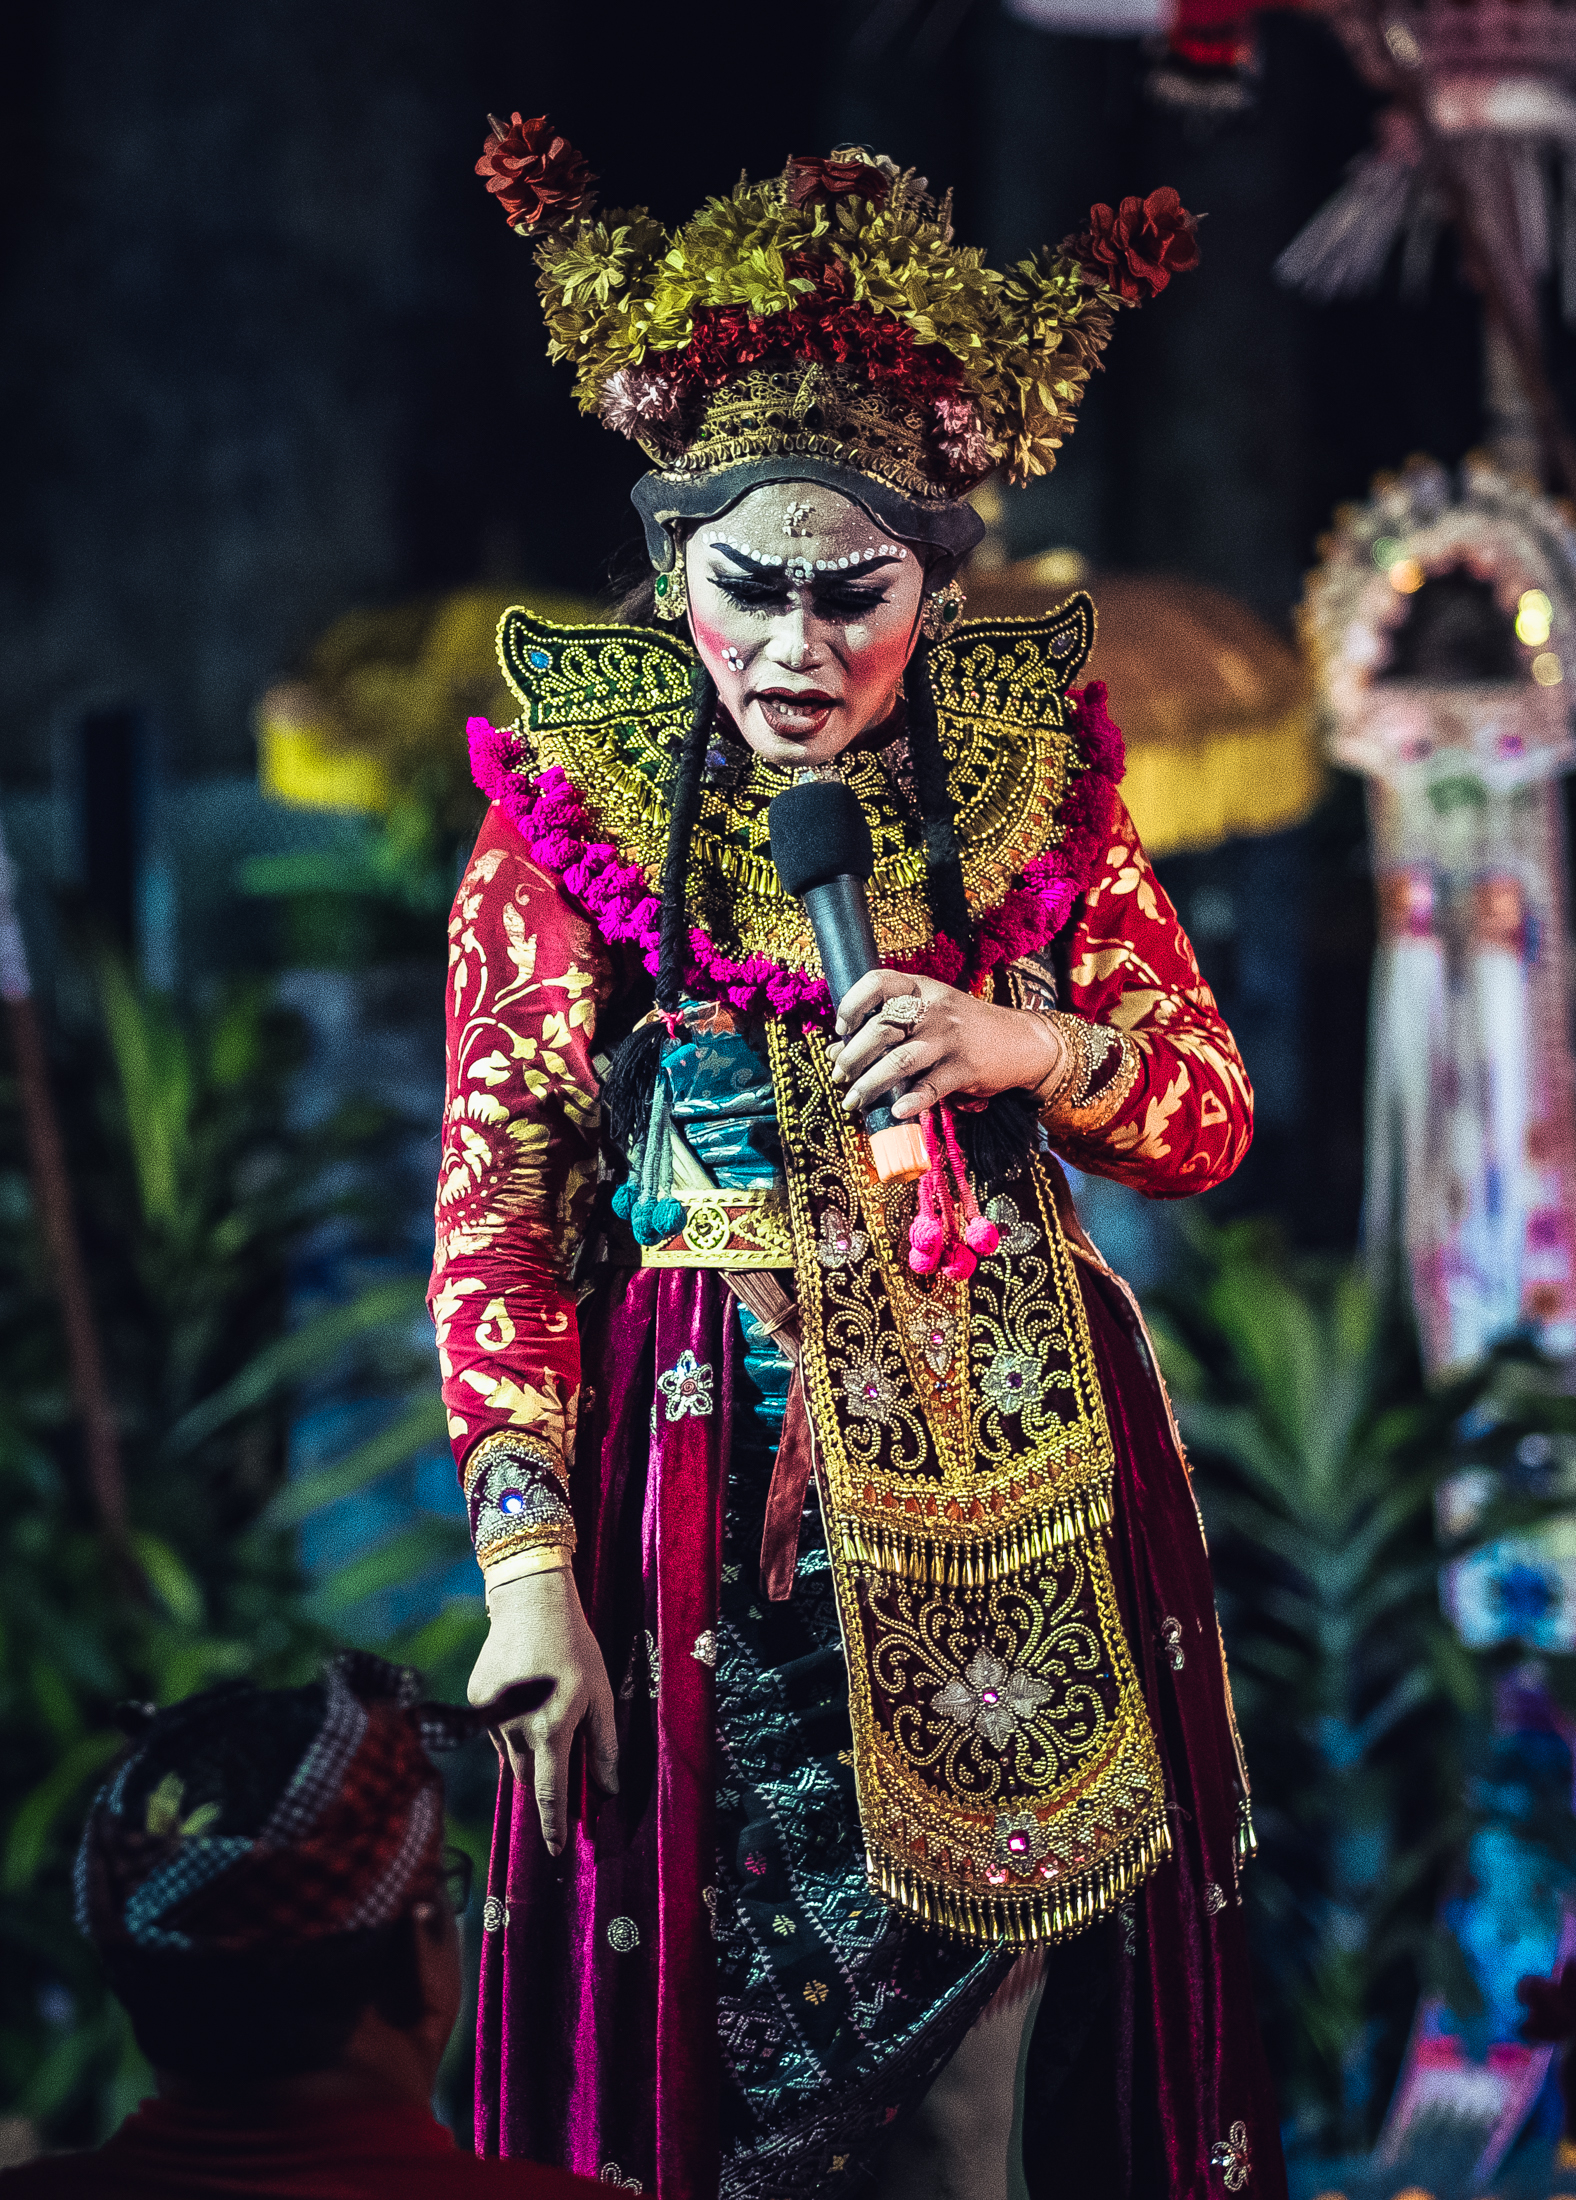 Calon Arang - A widow with very powerful black magic who often damages farmers' crops and causes diseases.